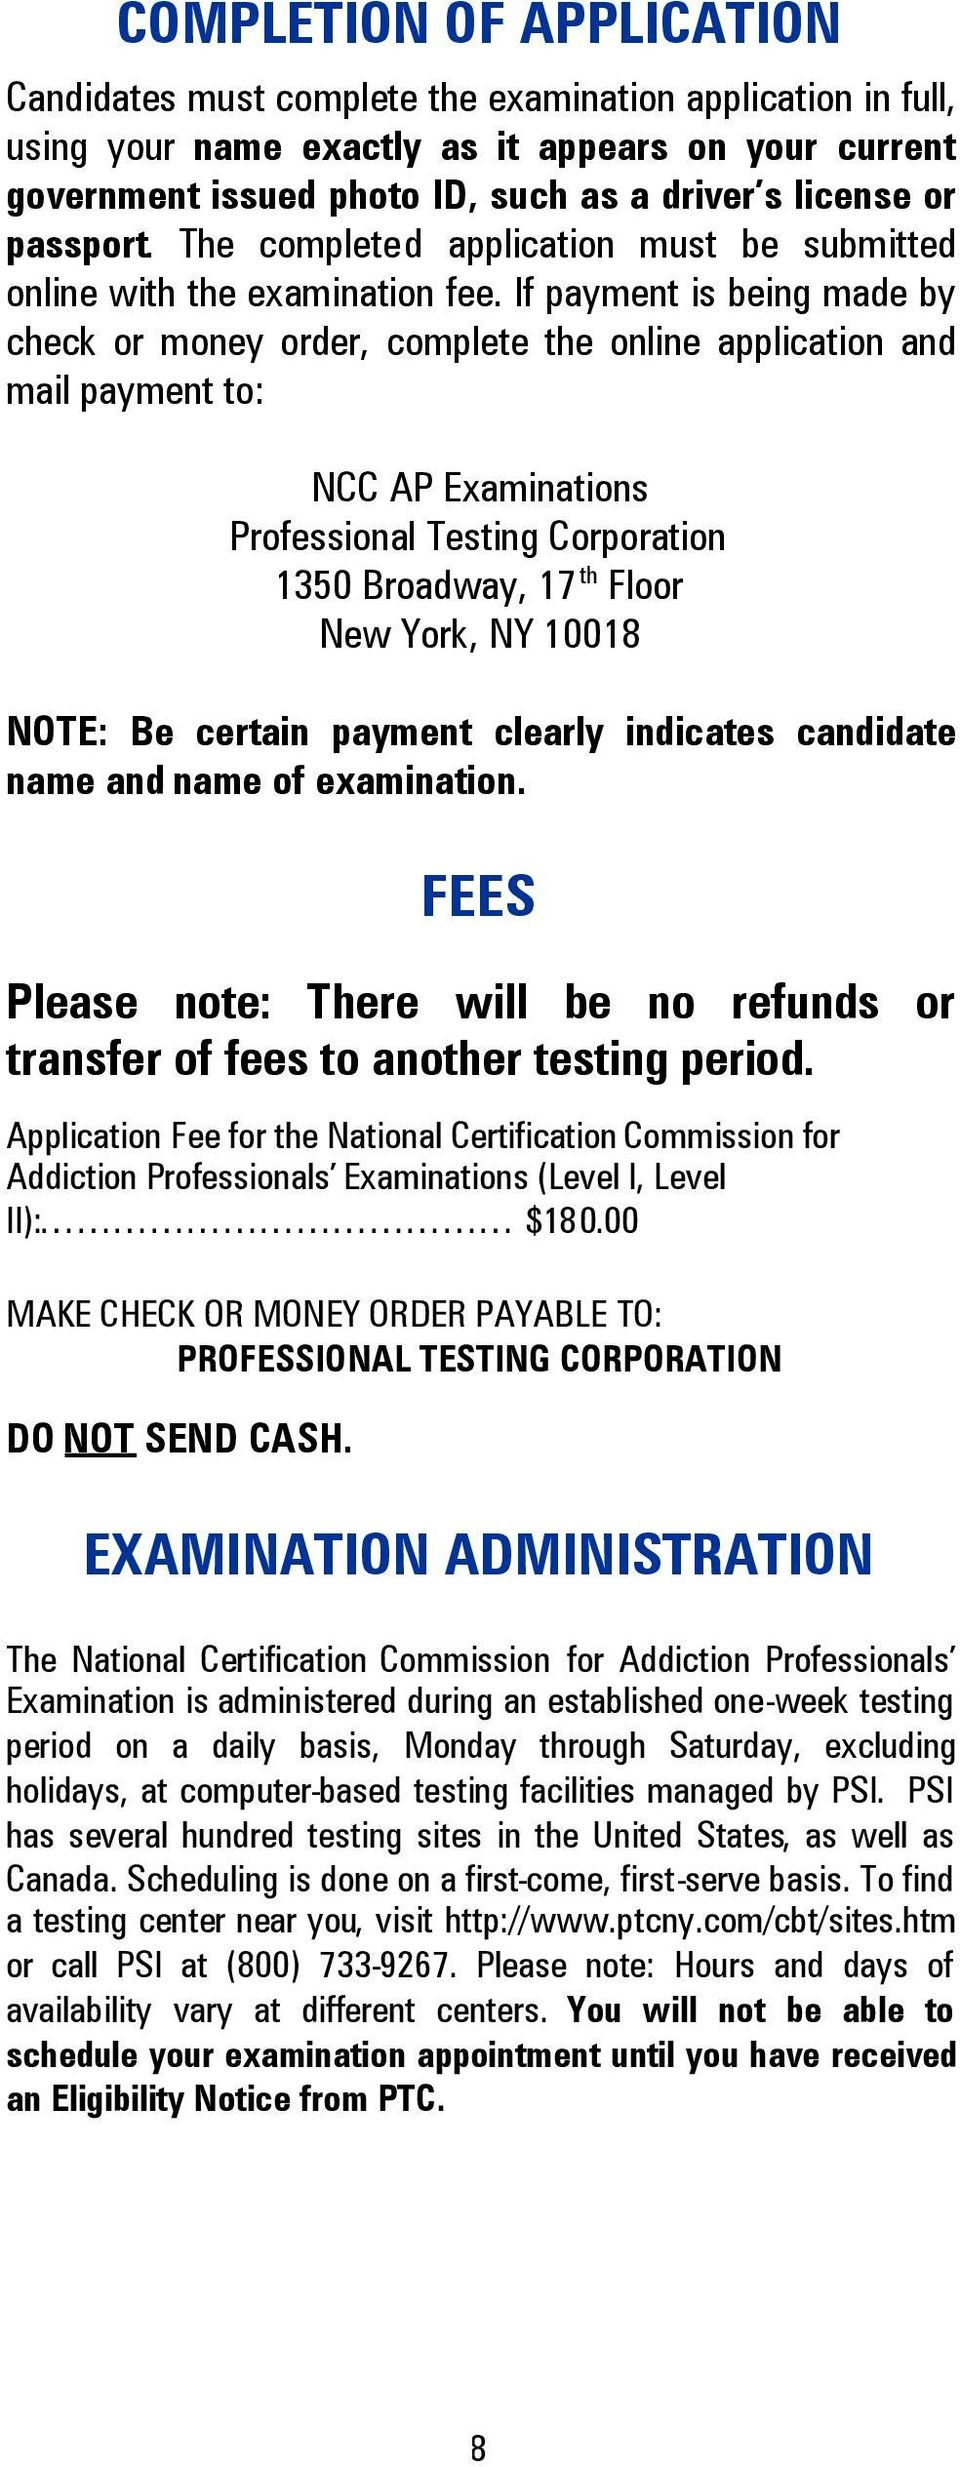 If payment is being made by check or money order, complete the online application and mail payment to: NCC AP Examinations Professional Testing Corporation 1350 Broadway, 17 th Floor New York, NY